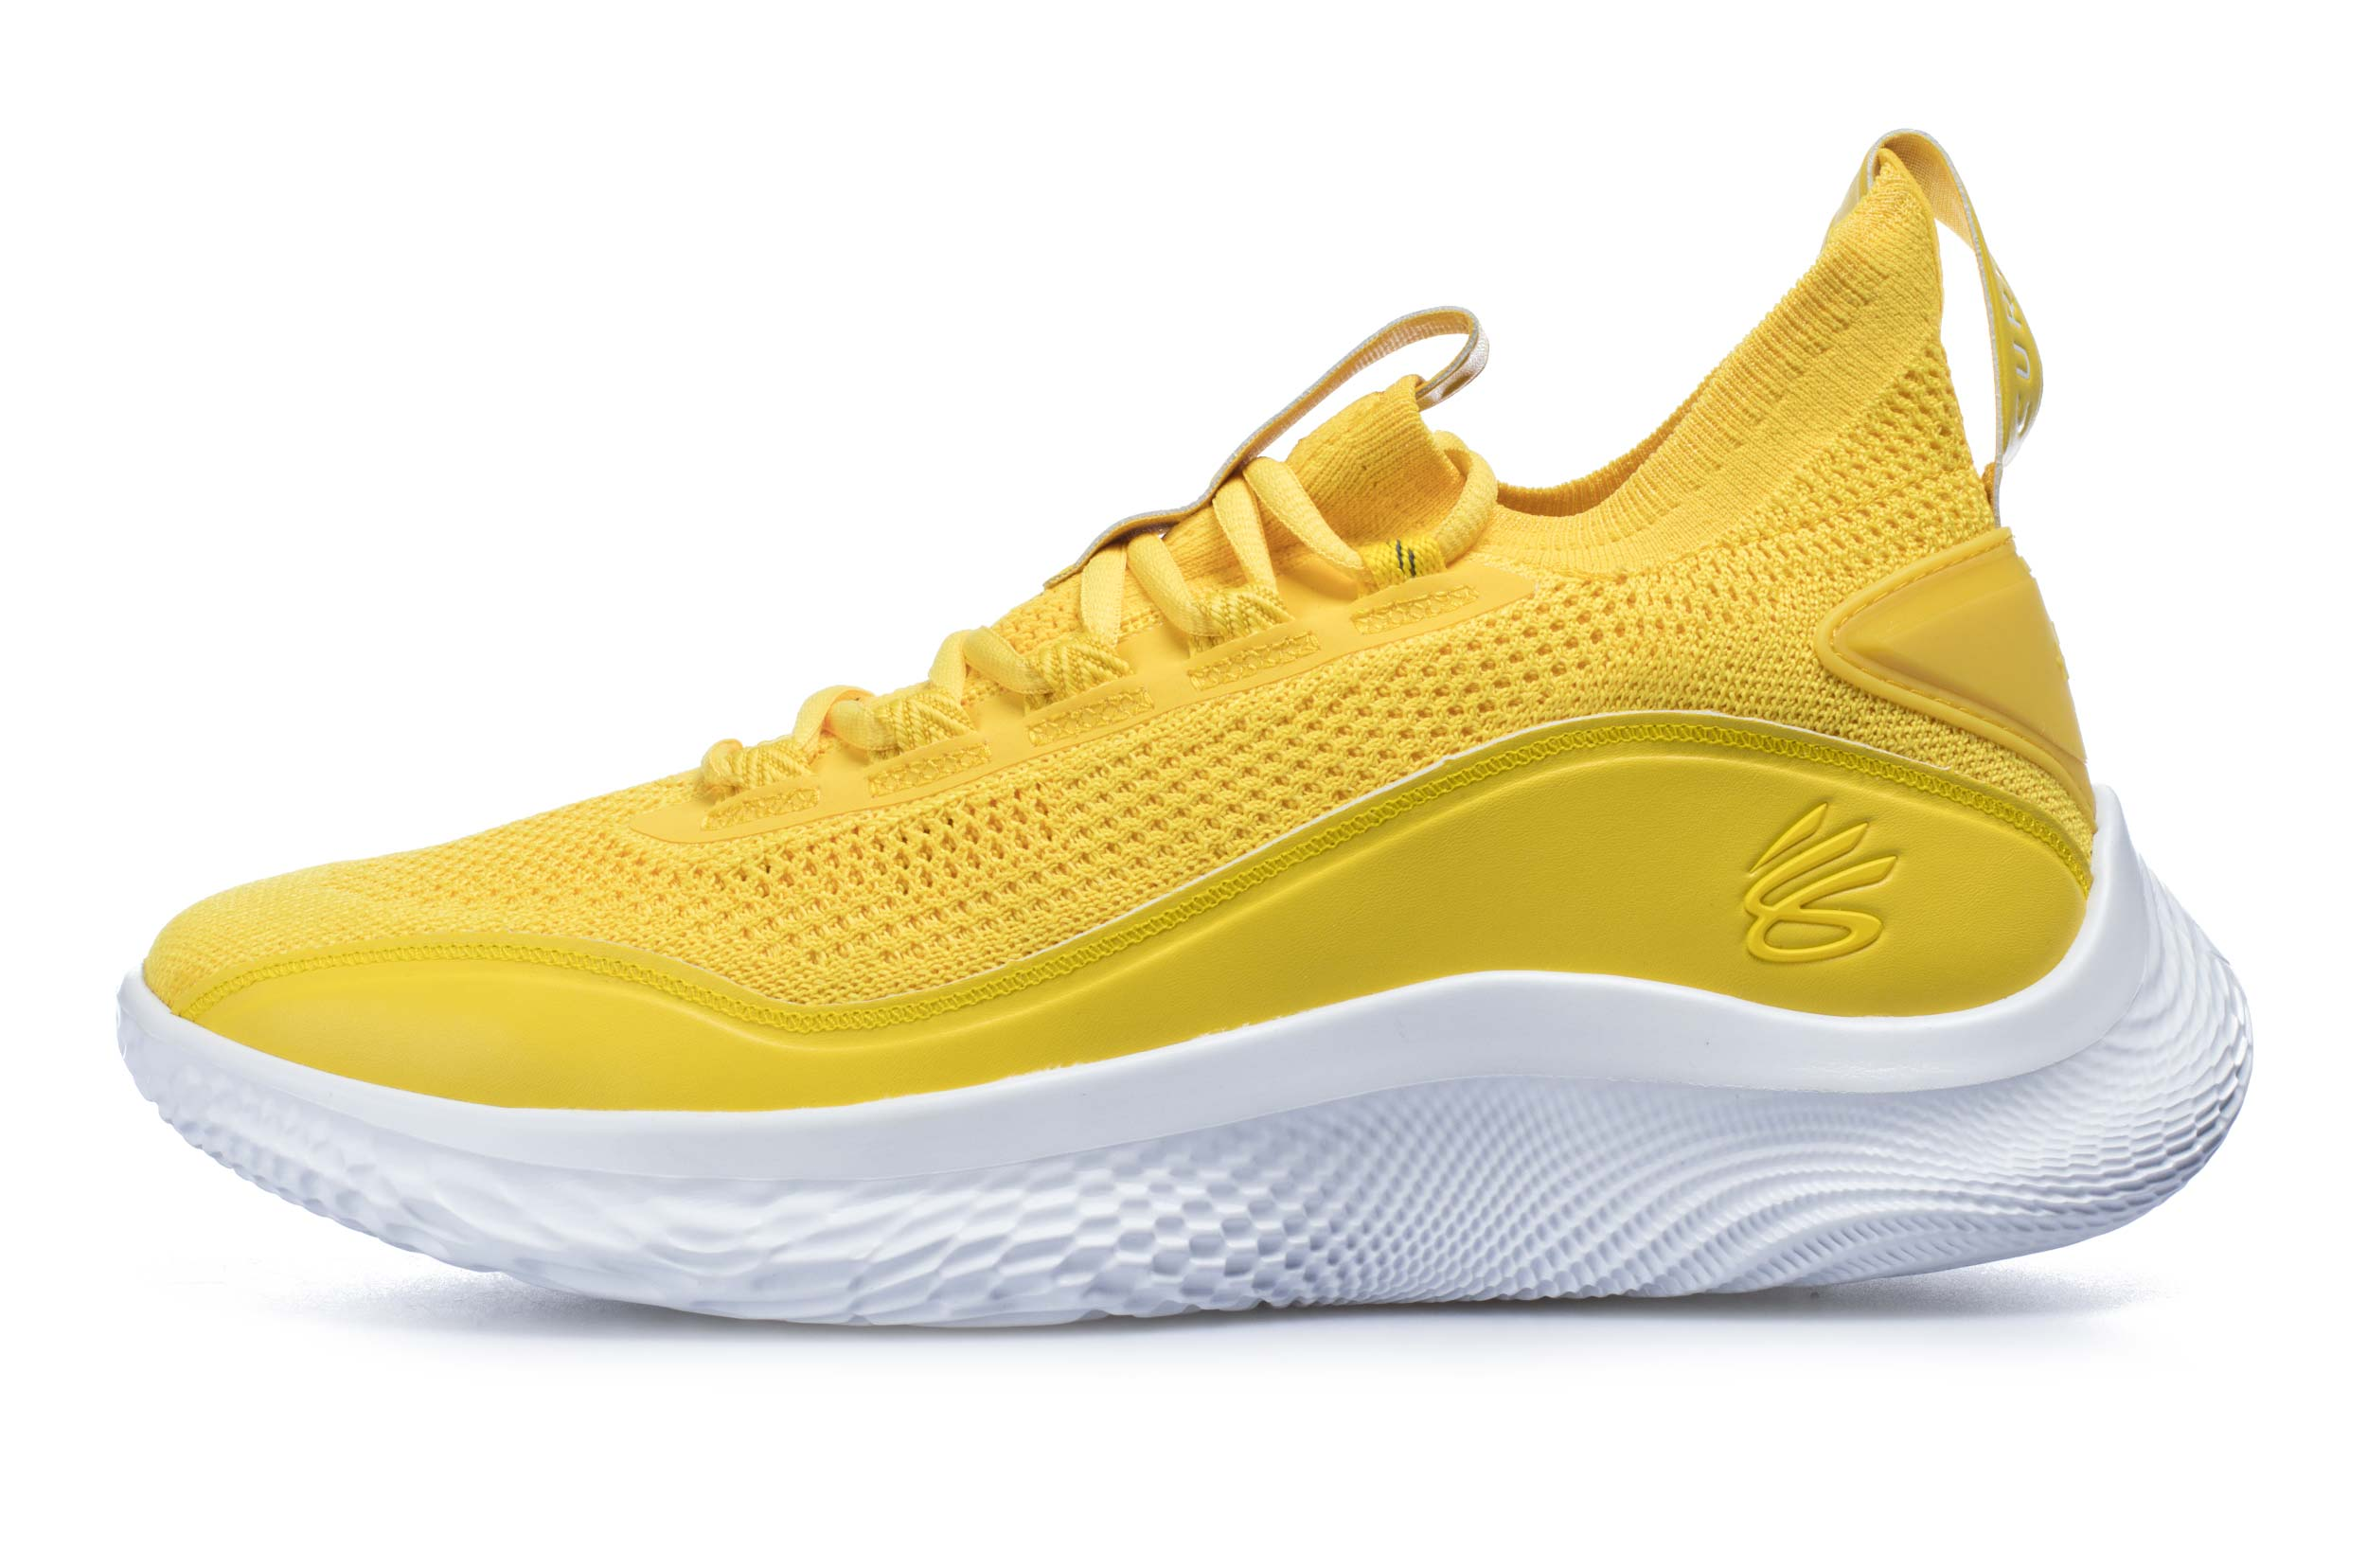 UNDER ARMOUR CURRY 8 BUTTER FLOW 3023085-701 Κίτρινο